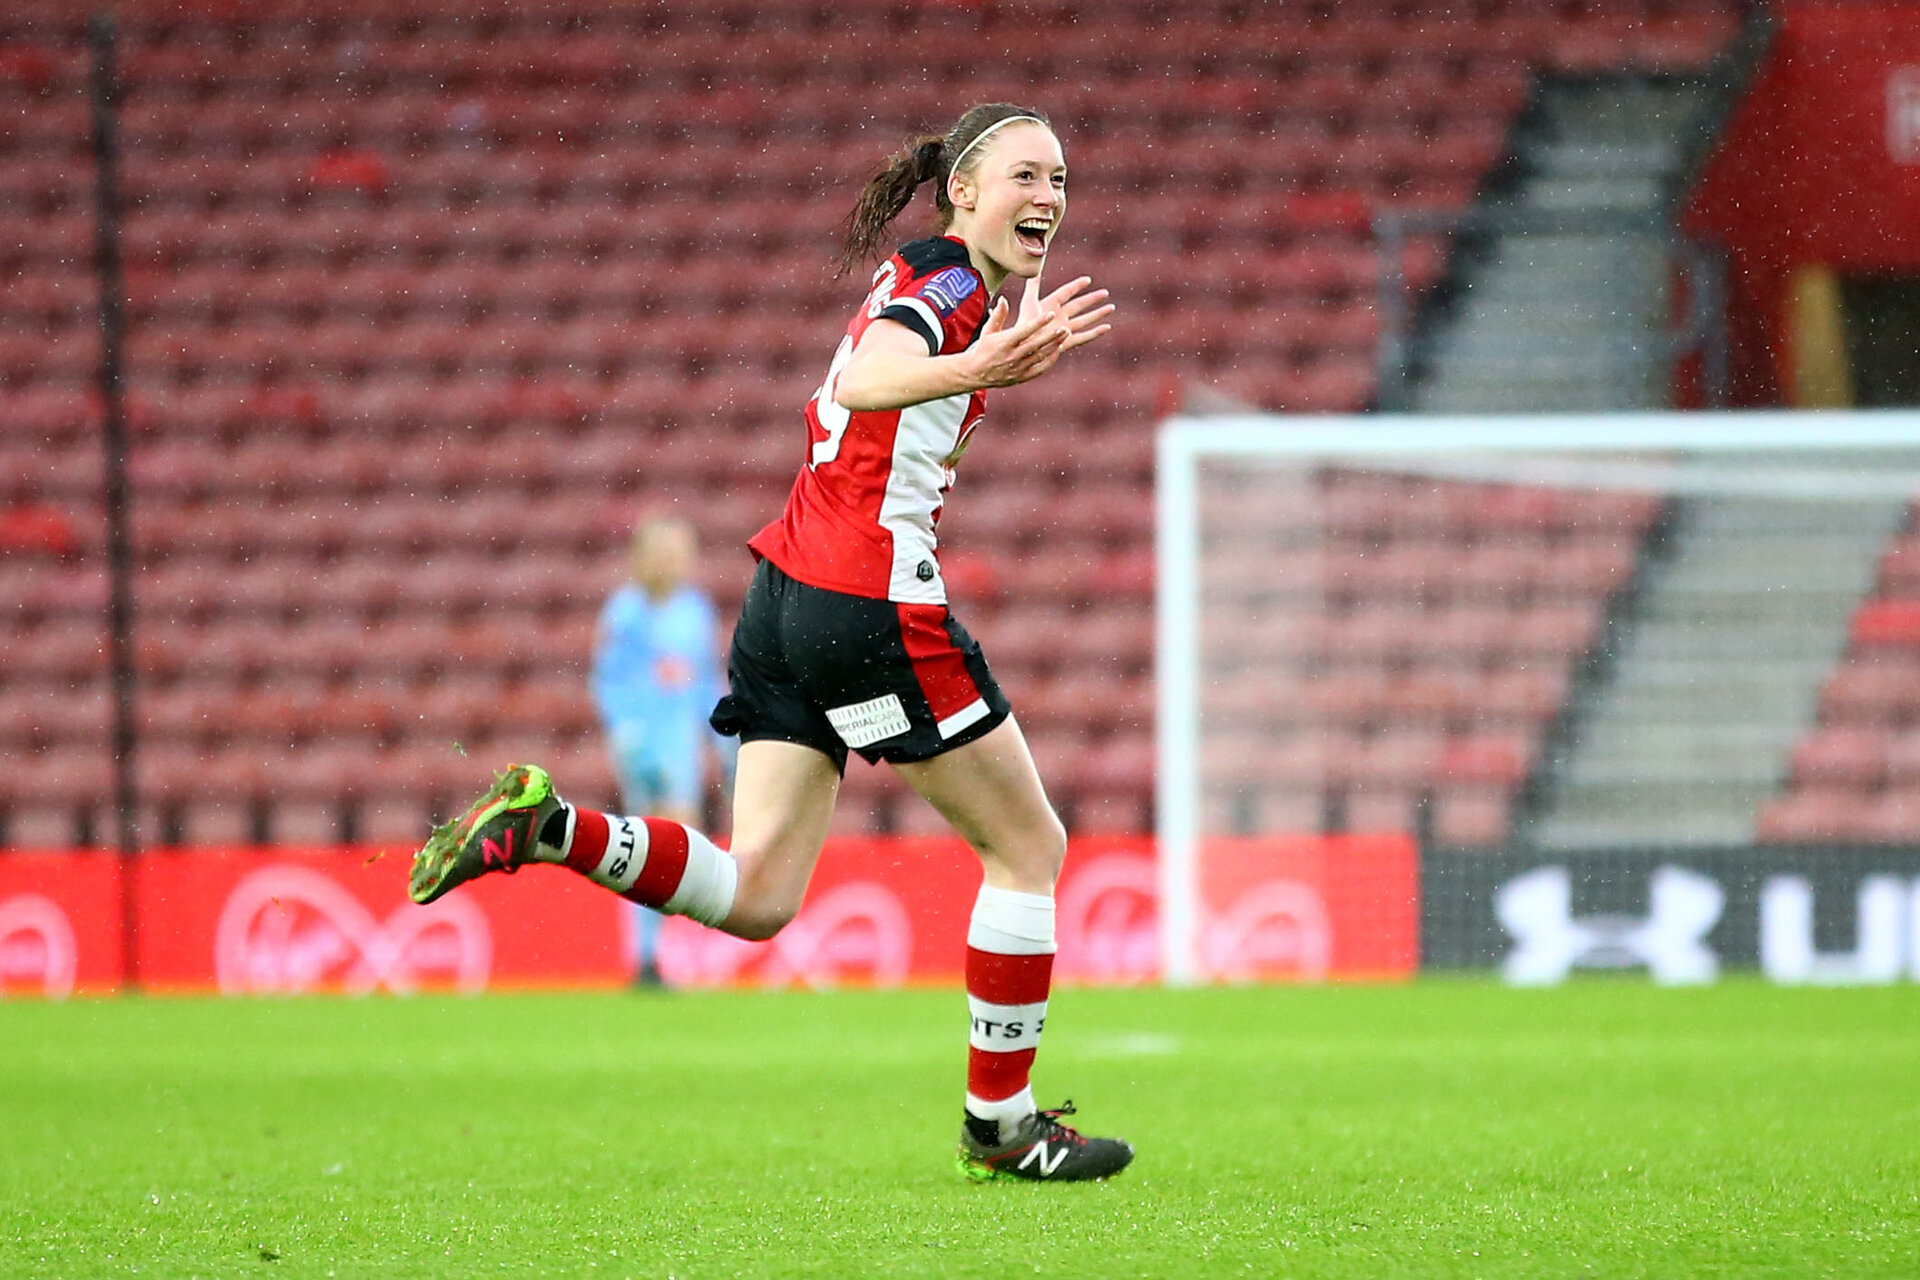 SOUTHAMPTON, ENGLAND - JANUARY 26: Rachel Panting goal celebration during the Women's FA Cup Fourth Round match between Southampton FC and Coventry United Ladies at St. Mary's Stadium on January 26, 2020 in Southampton, England. (Photo by Isabelle Field/Southampton FC via Getty Images)